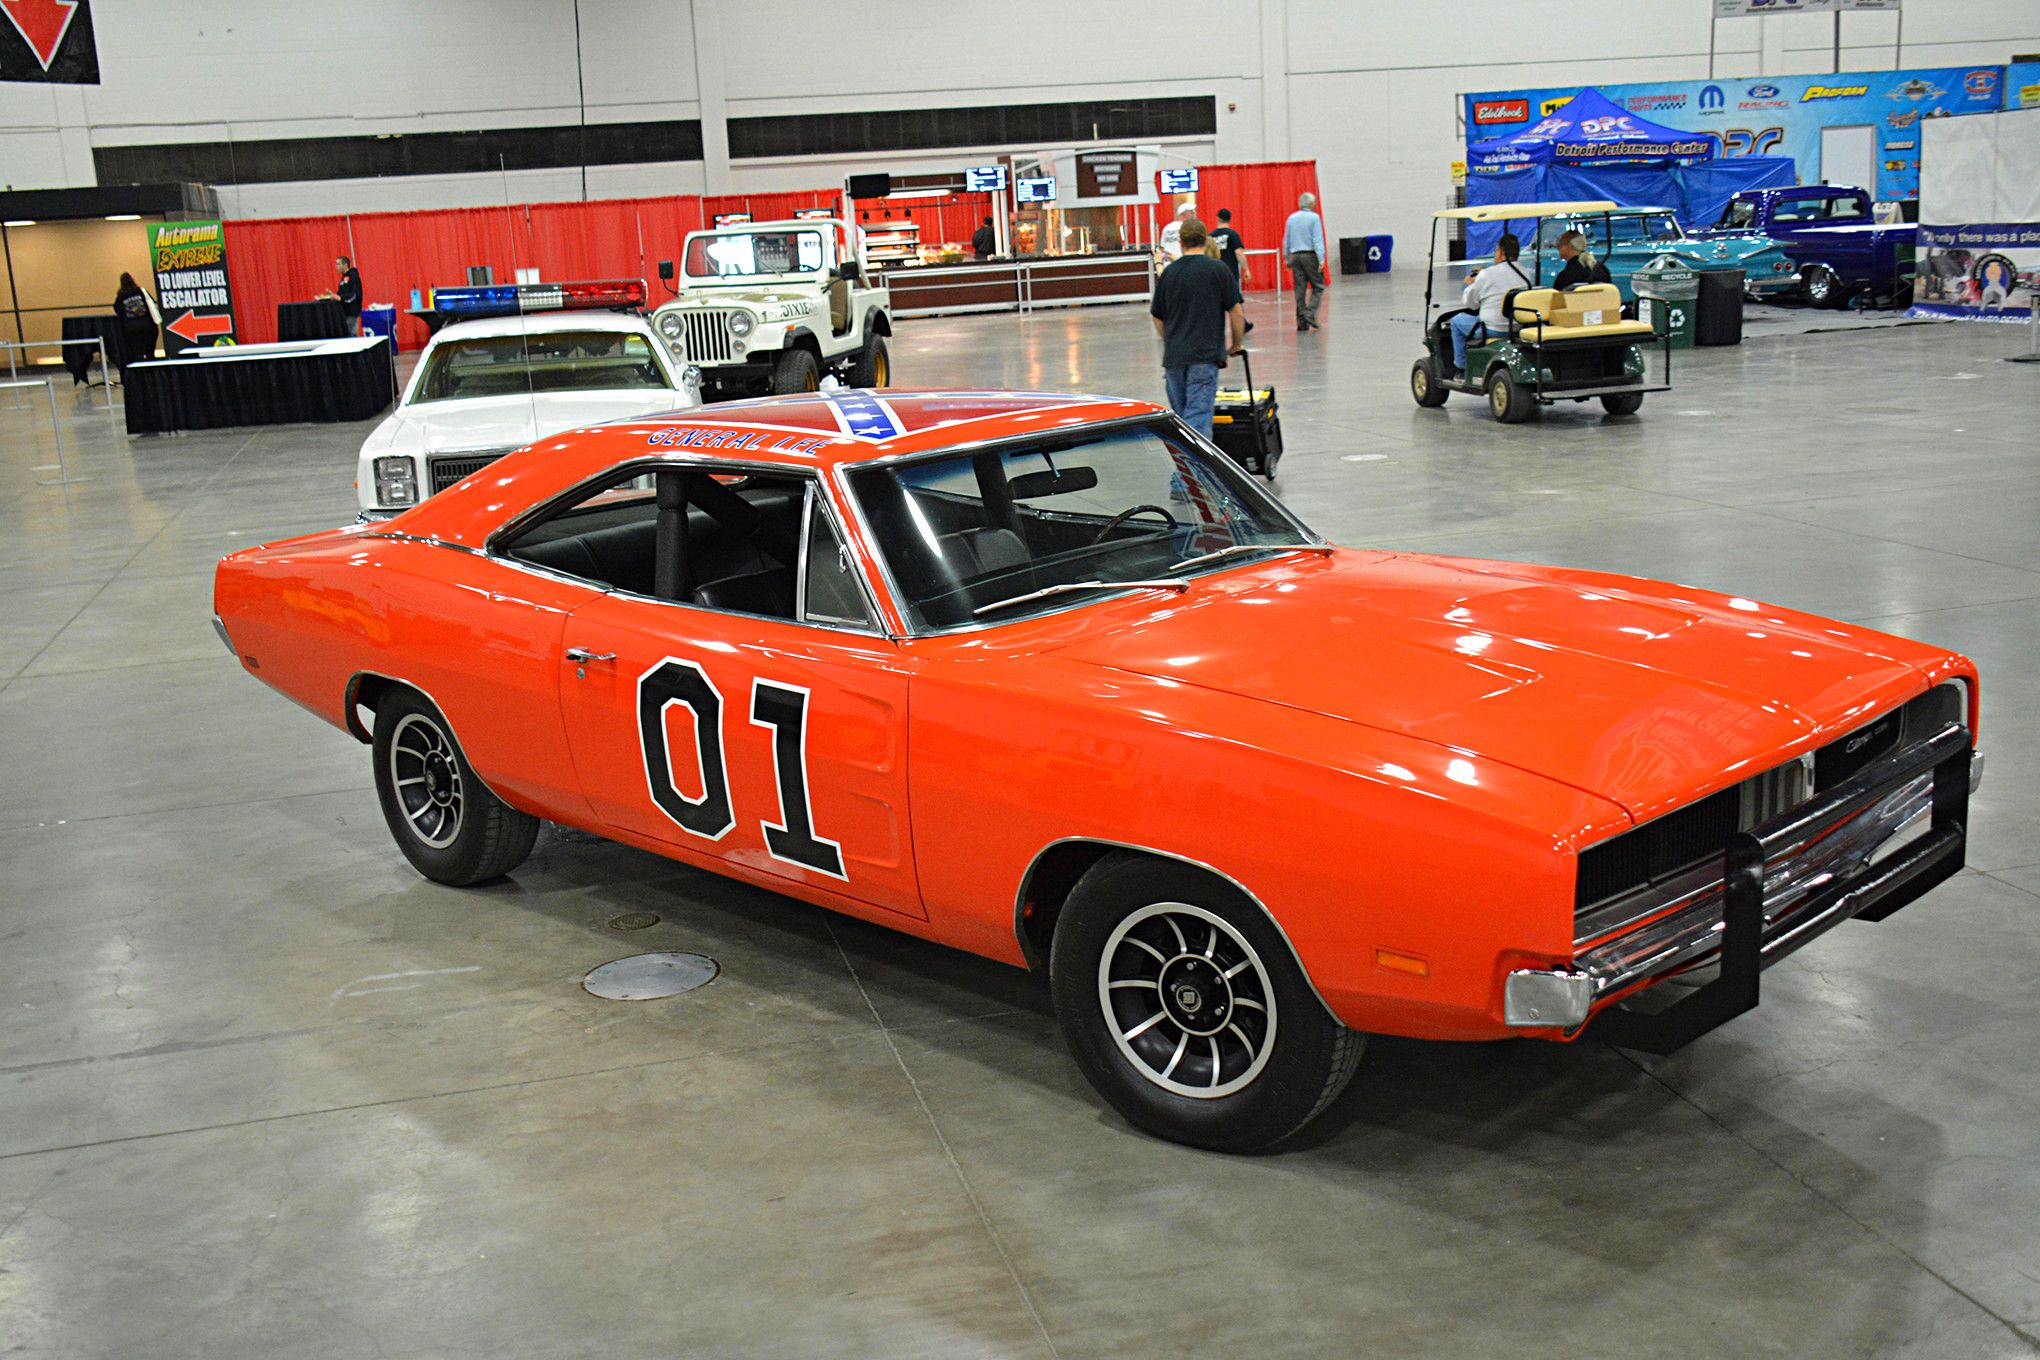 1969 Dodge Charger General Lee Dodge Charger 1969 Dodge Charger General Lee